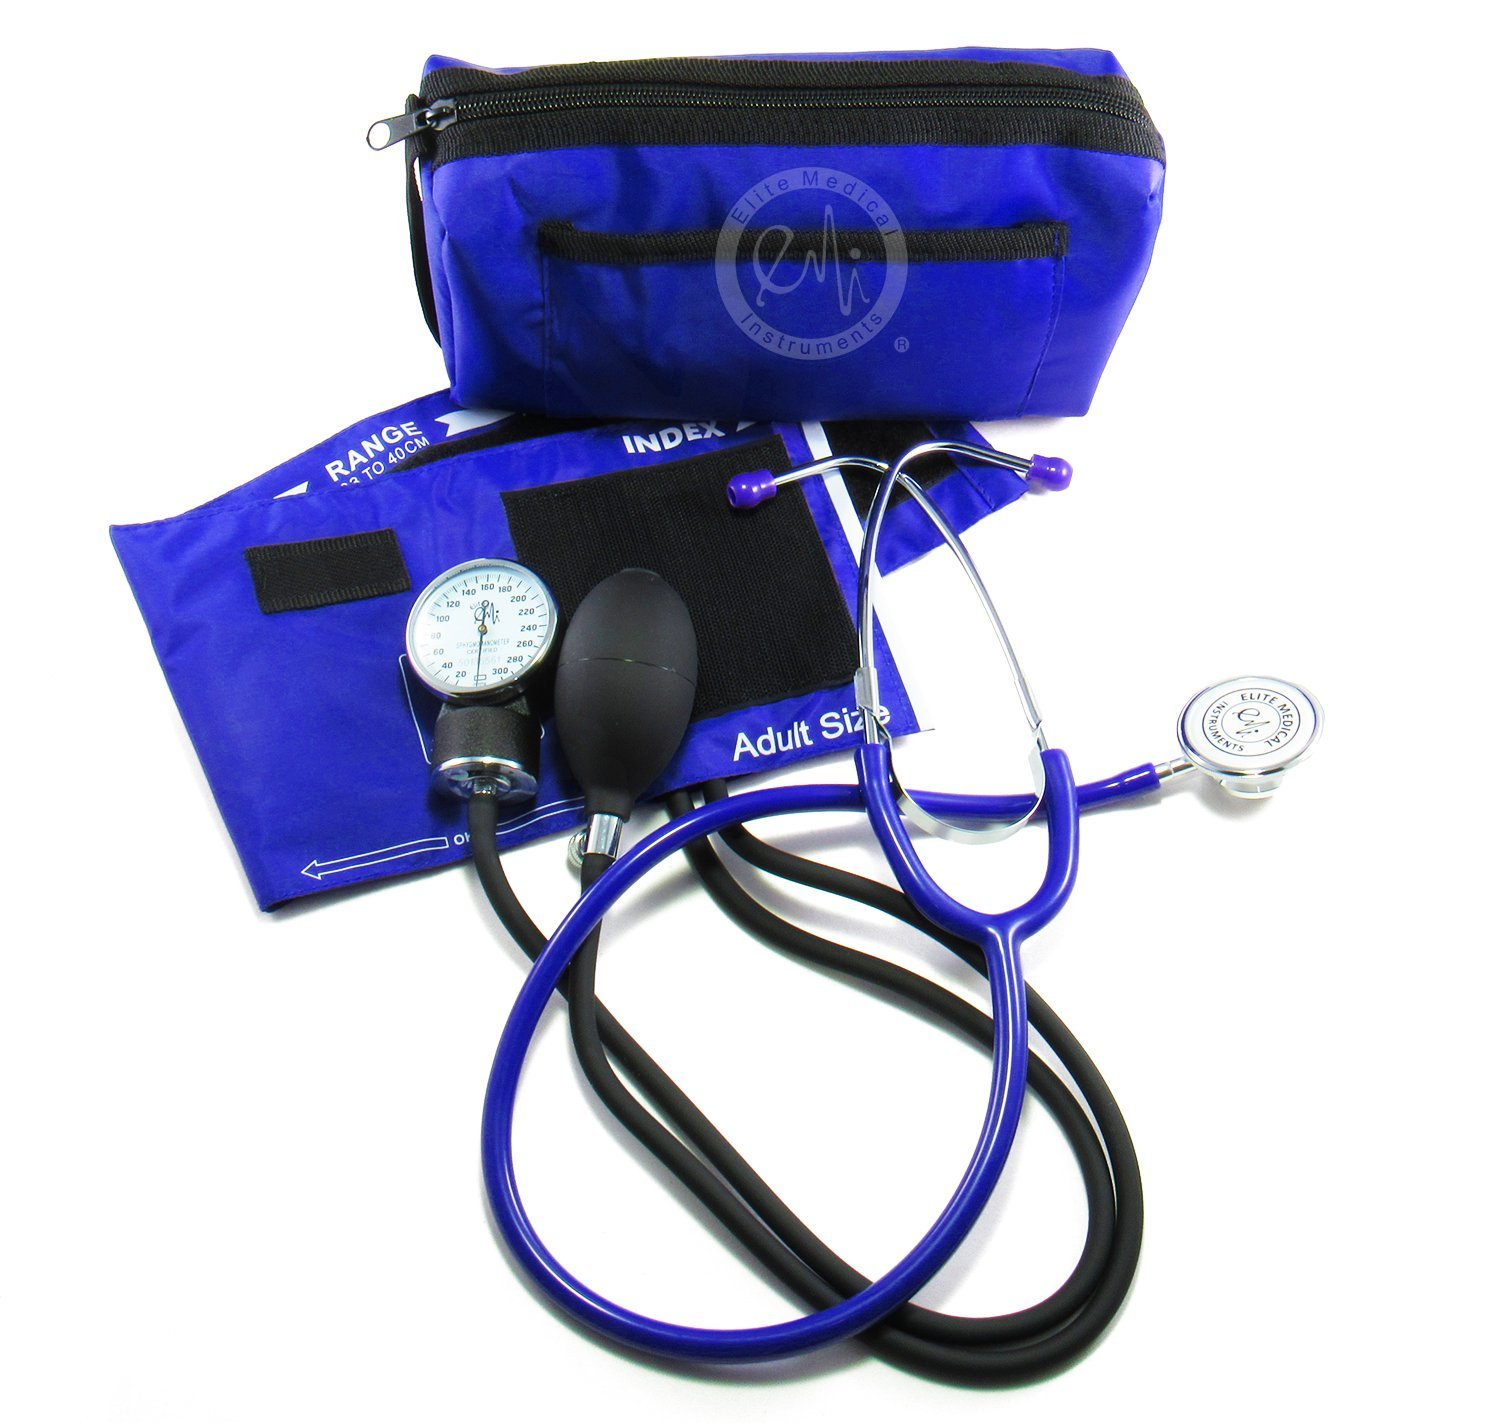 EMI #305 Aneroid Sphygmomanometer Blood Pressure Monitor and Dual Head Stethoscope Kit Set (305, Royal)